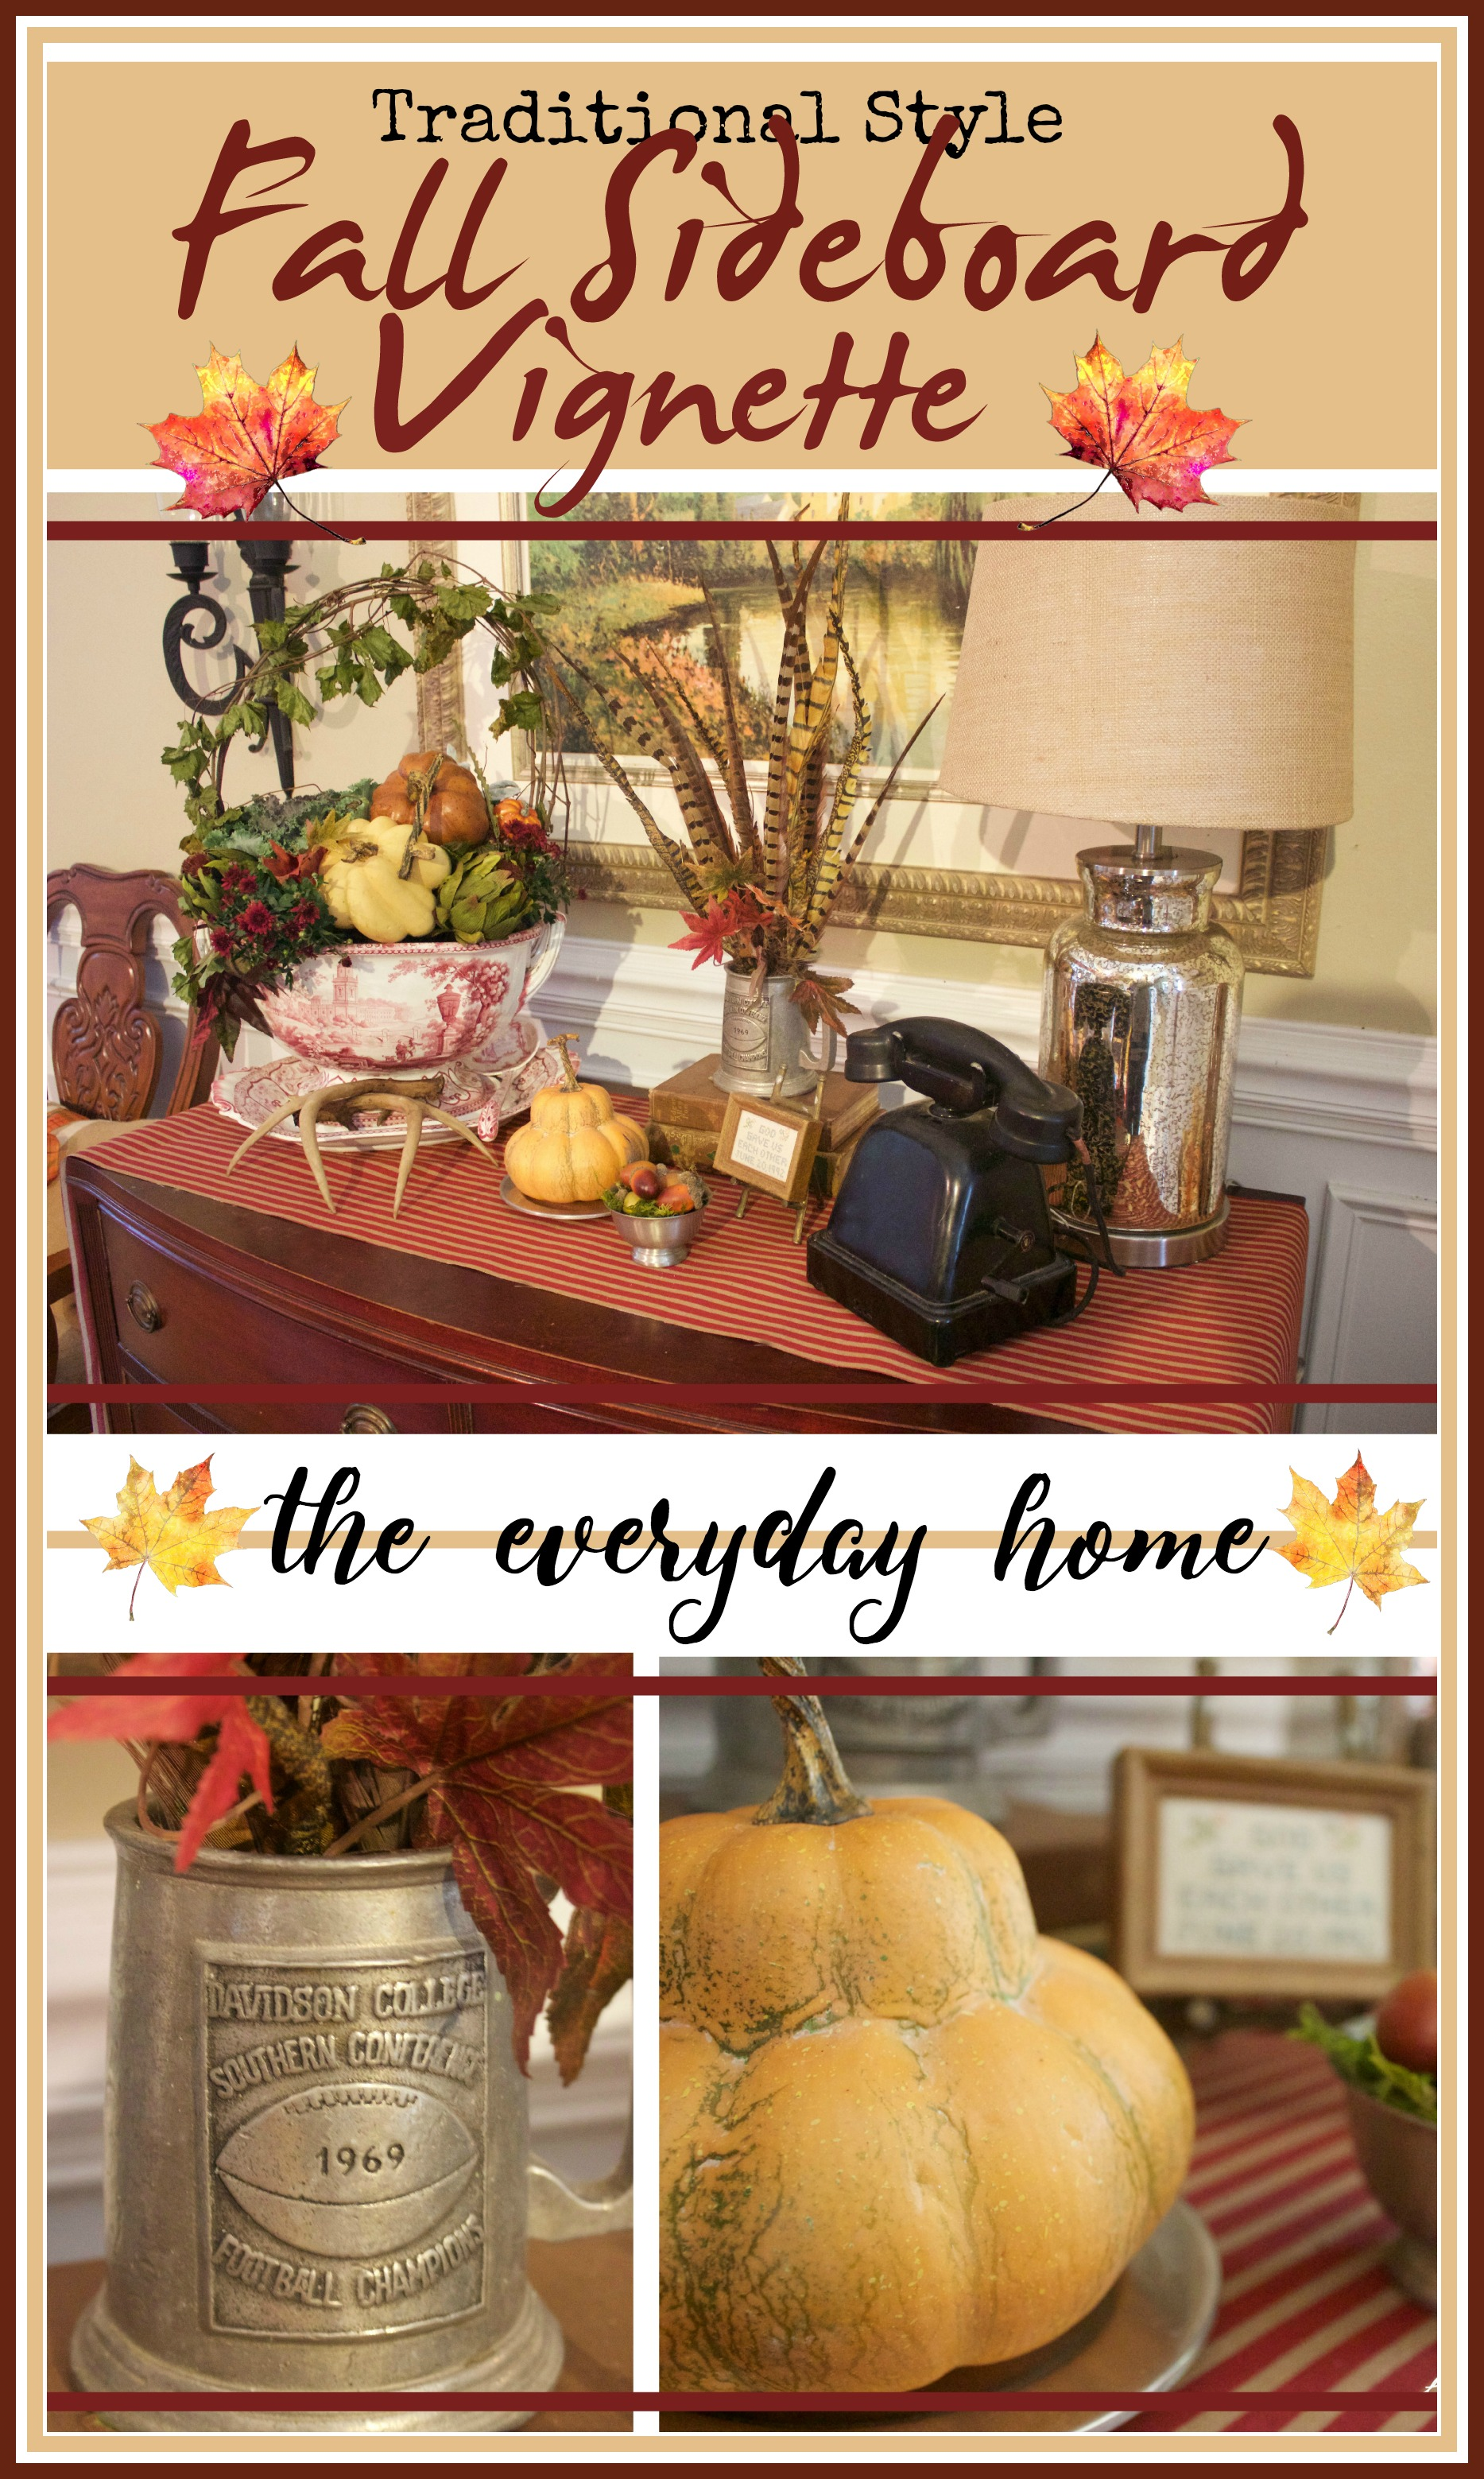 Fall Sideboard Vignette in Traditional Style | The Everyday Home | www.everydayhomeblog.com